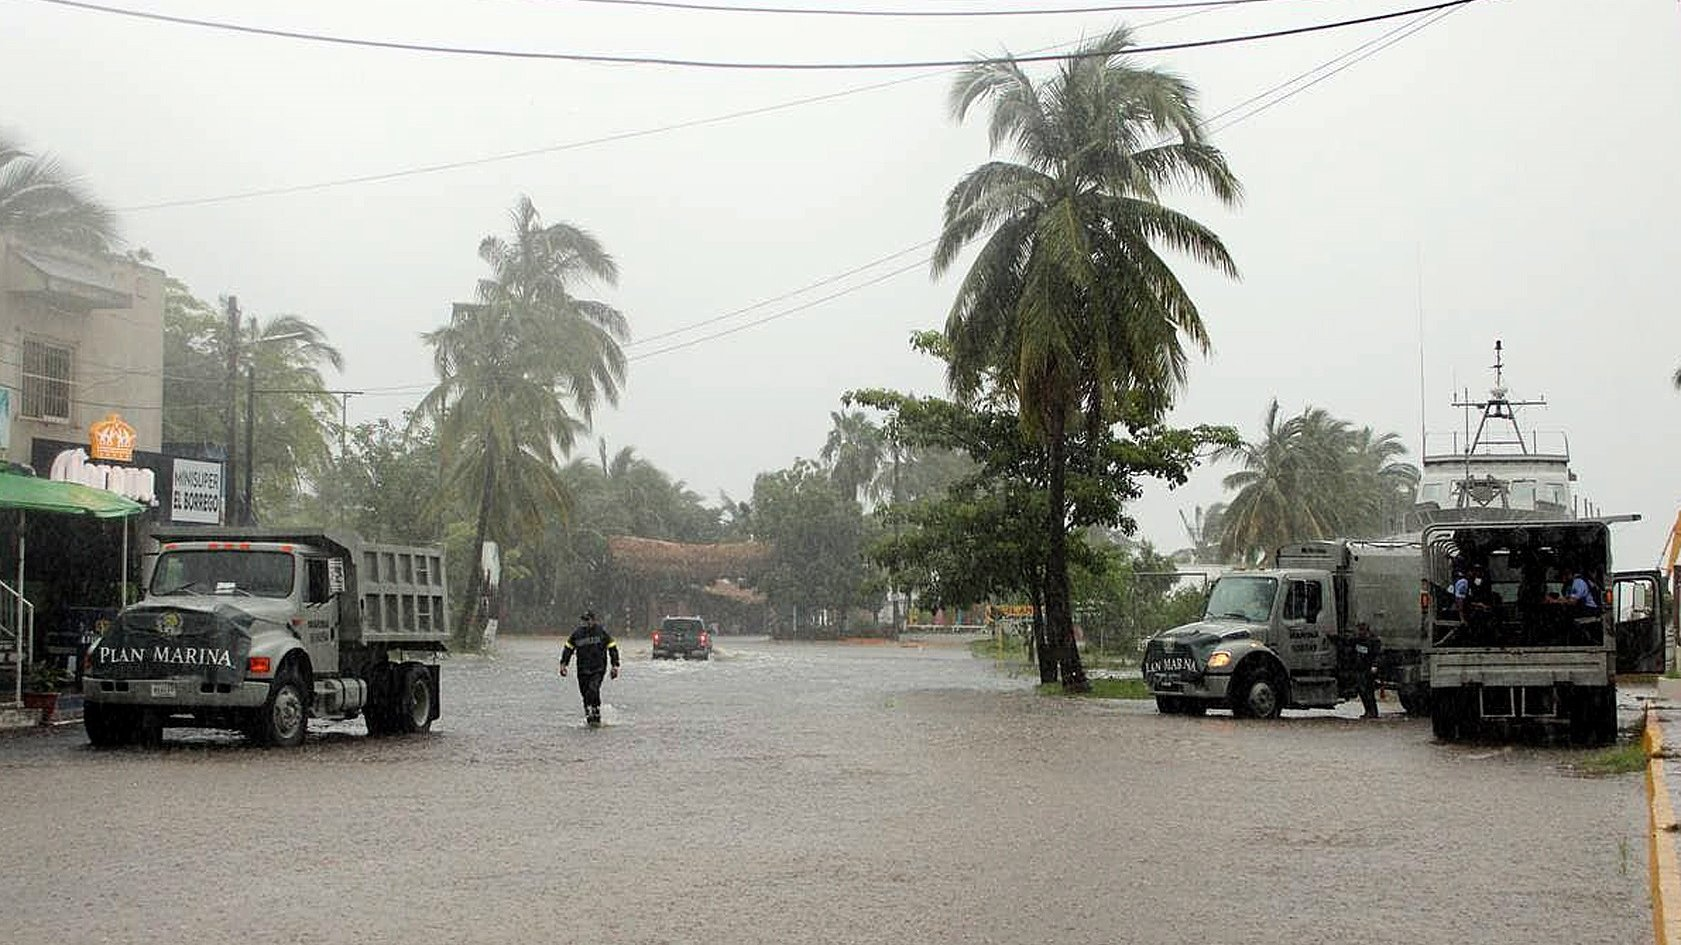 epa09435787 Members of the Mexican Navy patrols in the areas affected by the heavy rains caused by Hurricane Nora in San Blas, Nayarit state, Mexico, 29 August 2021. Originated in the Pacific, Hurricane Nora runs Sinaloa, causing heavy rains in Nayarit and Jalisco states. Authorities are expecting Nora to turn into a tropical storm in the coming hours.  EPA/Aaron Garcia